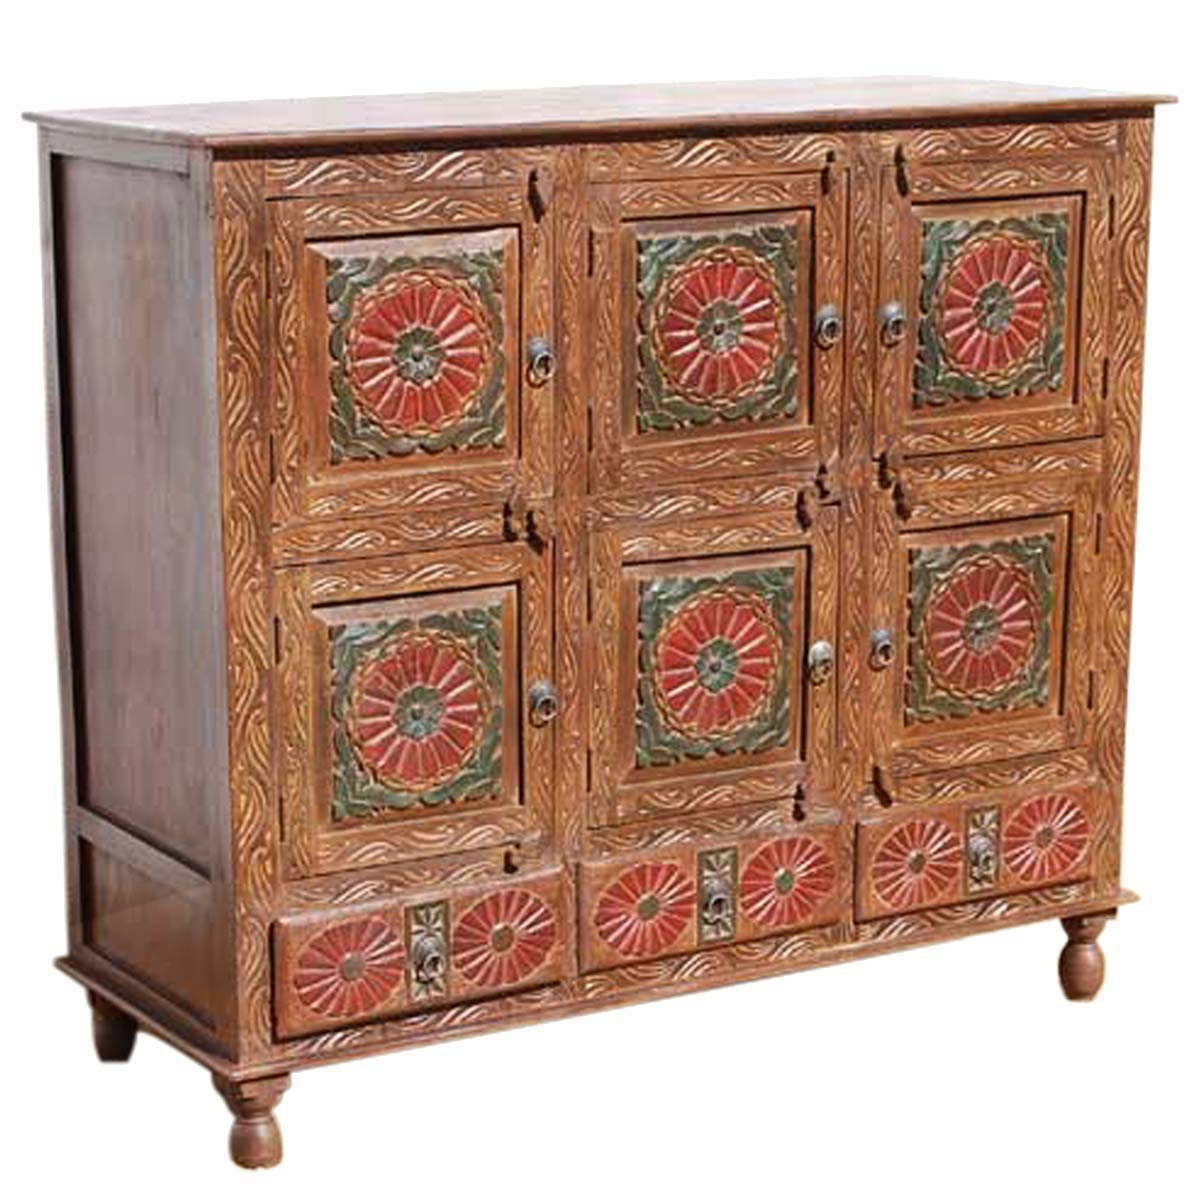 Starburst 3 Door Sideboards Within Favorite Chicago Red Poppy Handcarved 9 Compartment 3 Drawer Sideboard (View 7 of 20)